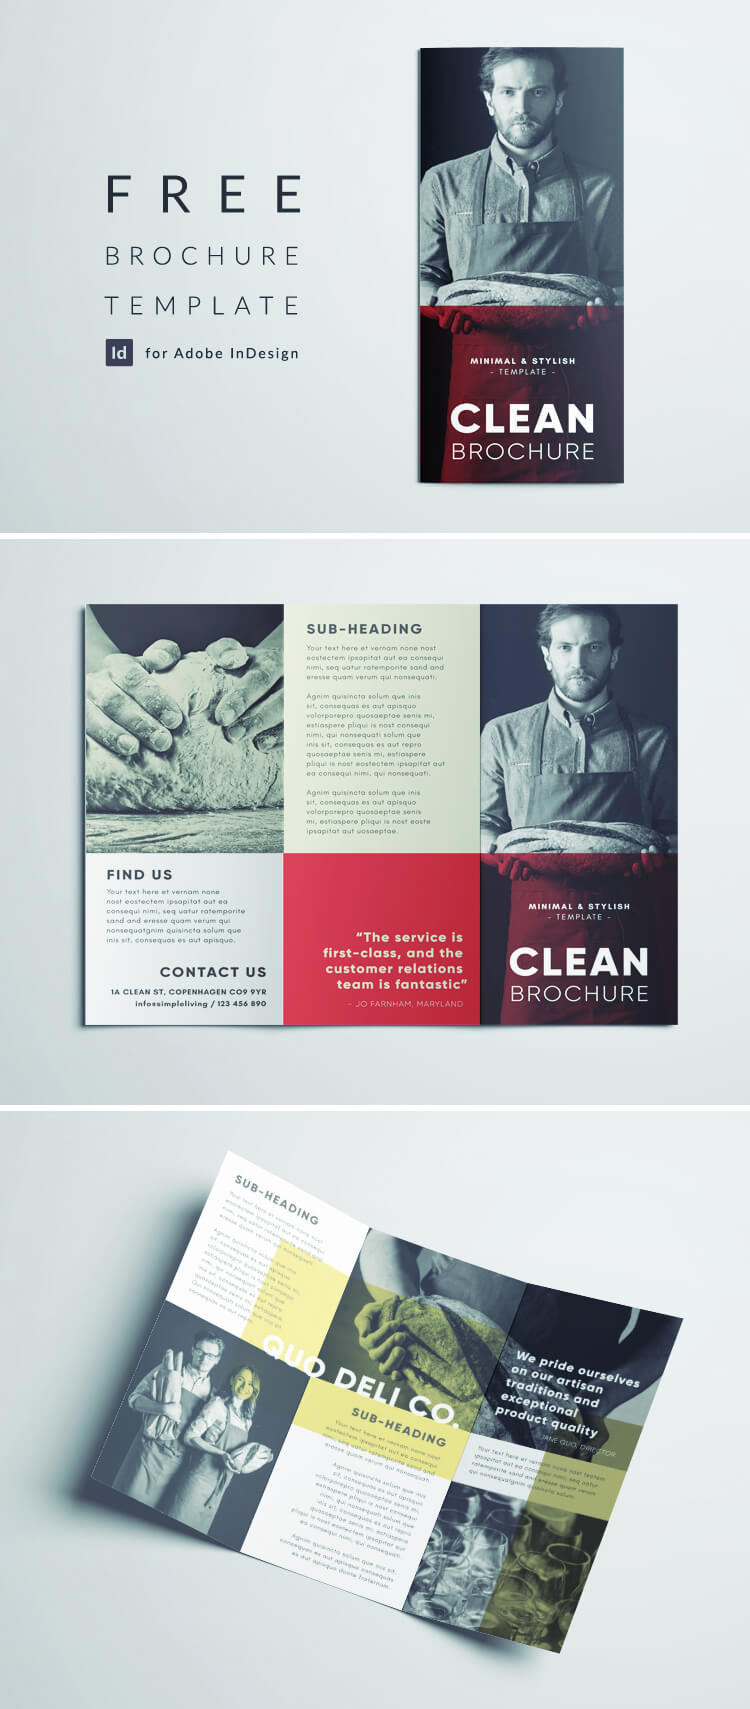 Clean Brochure Tempalte - Free InDesign Clean Brochure Template with Minimal Black and White Photography - Red and Yellow